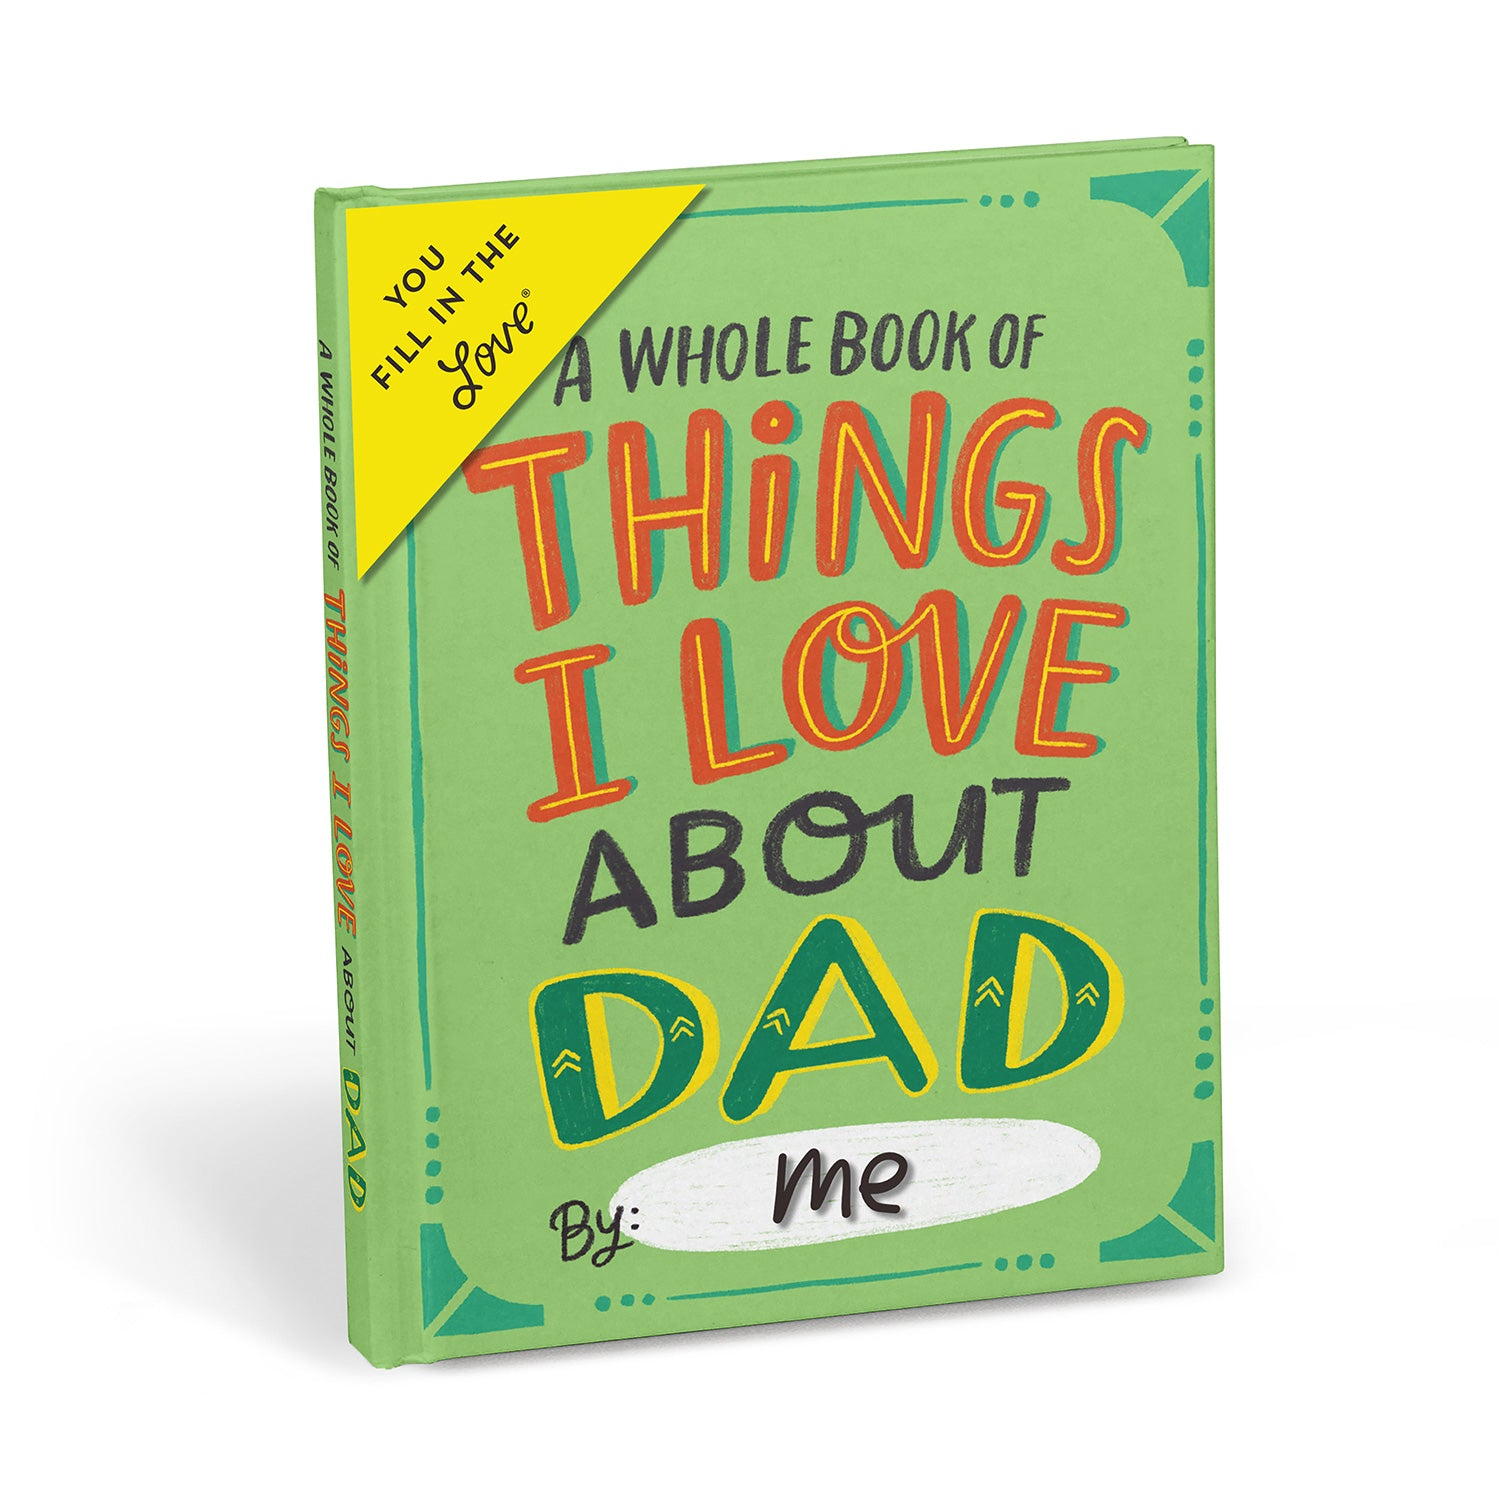 About Dad Fill in the Love Journal